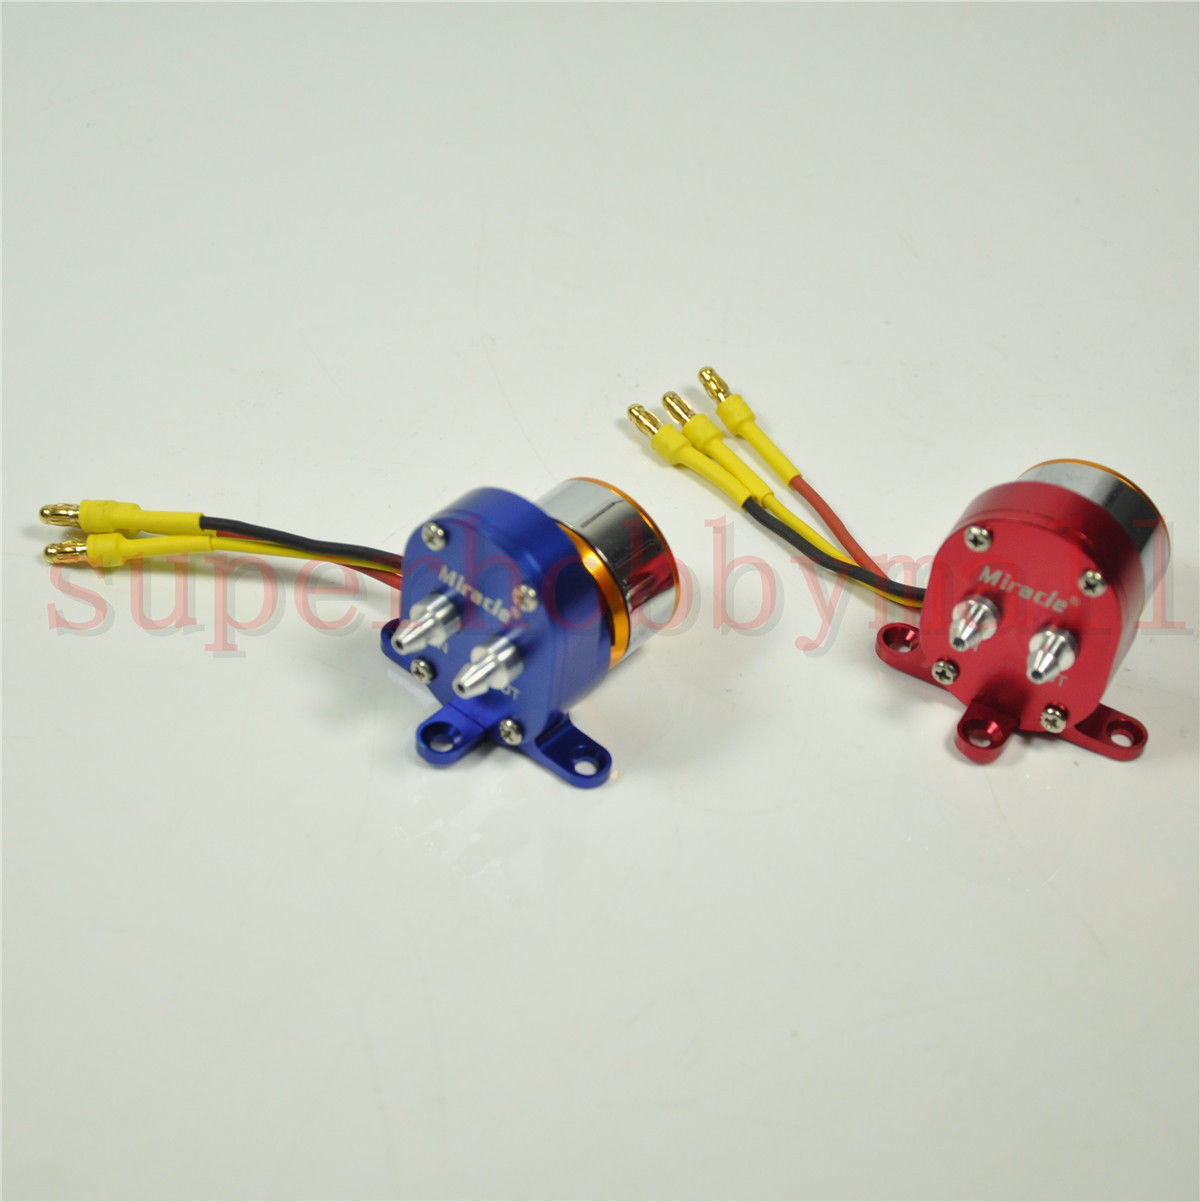 Smoke Pump With Brushless Motor ESC For Gas Engine RC Airplane Red/Blue MiracleSmoke Pump With Brushless Motor ESC For Gas Engine RC Airplane Red/Blue Miracle